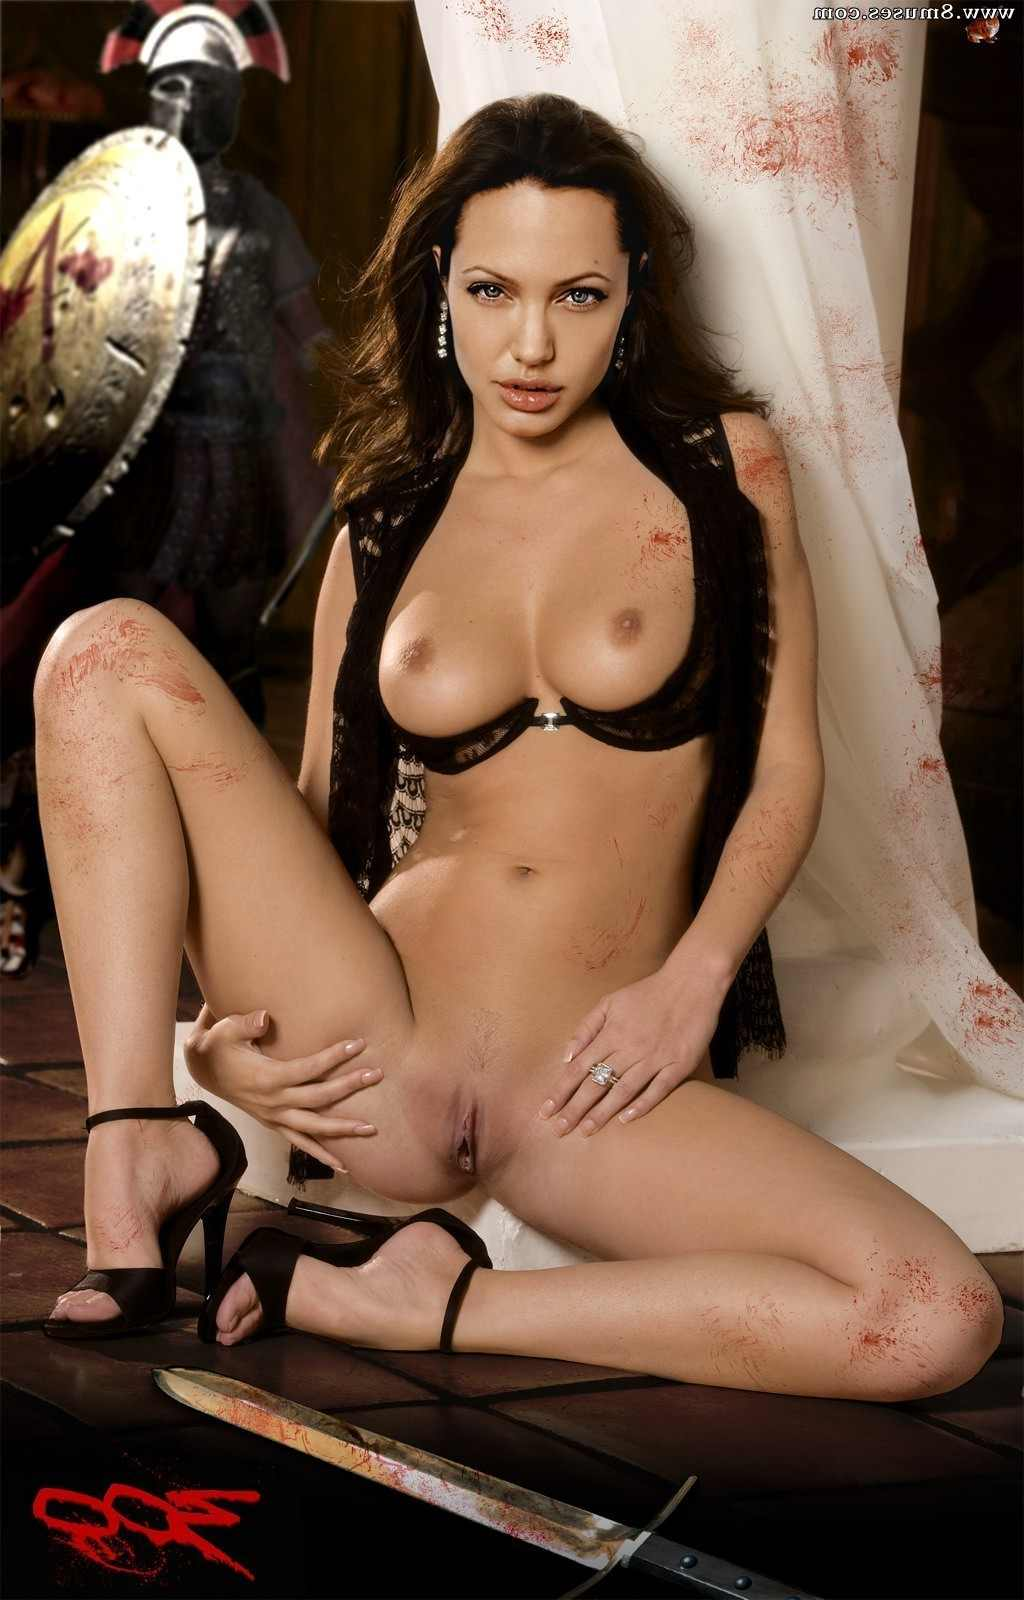 Fake-Celebrities-Sex-Pictures/Angelina-Jolie Angelina_Jolie__8muses_-_Sex_and_Porn_Comics_350.jpg